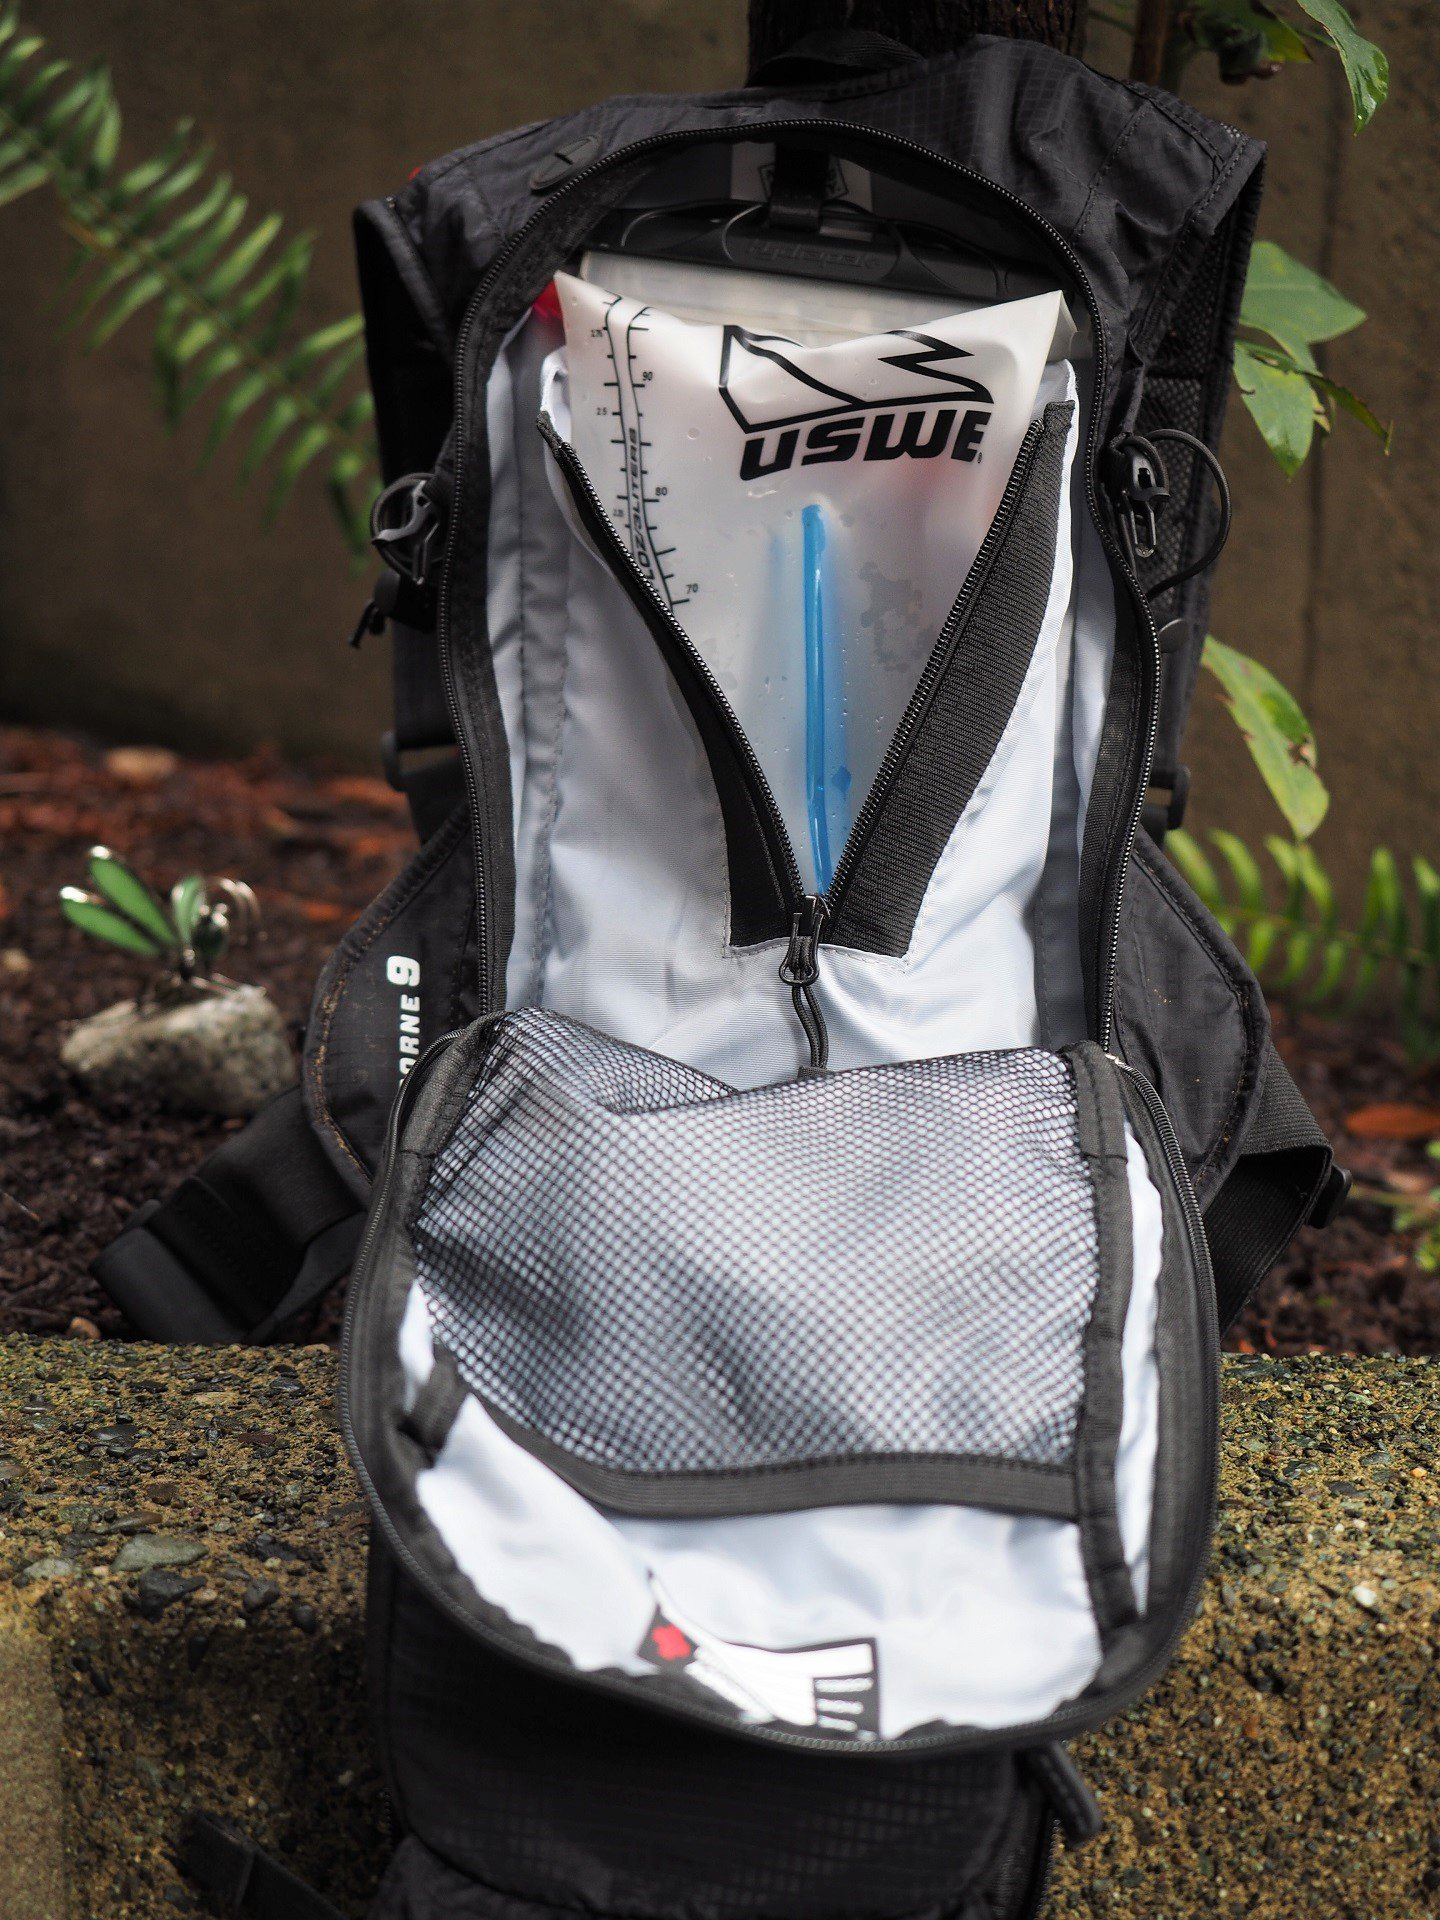 USWE Airborne 9 Hydration Pack AndrewM